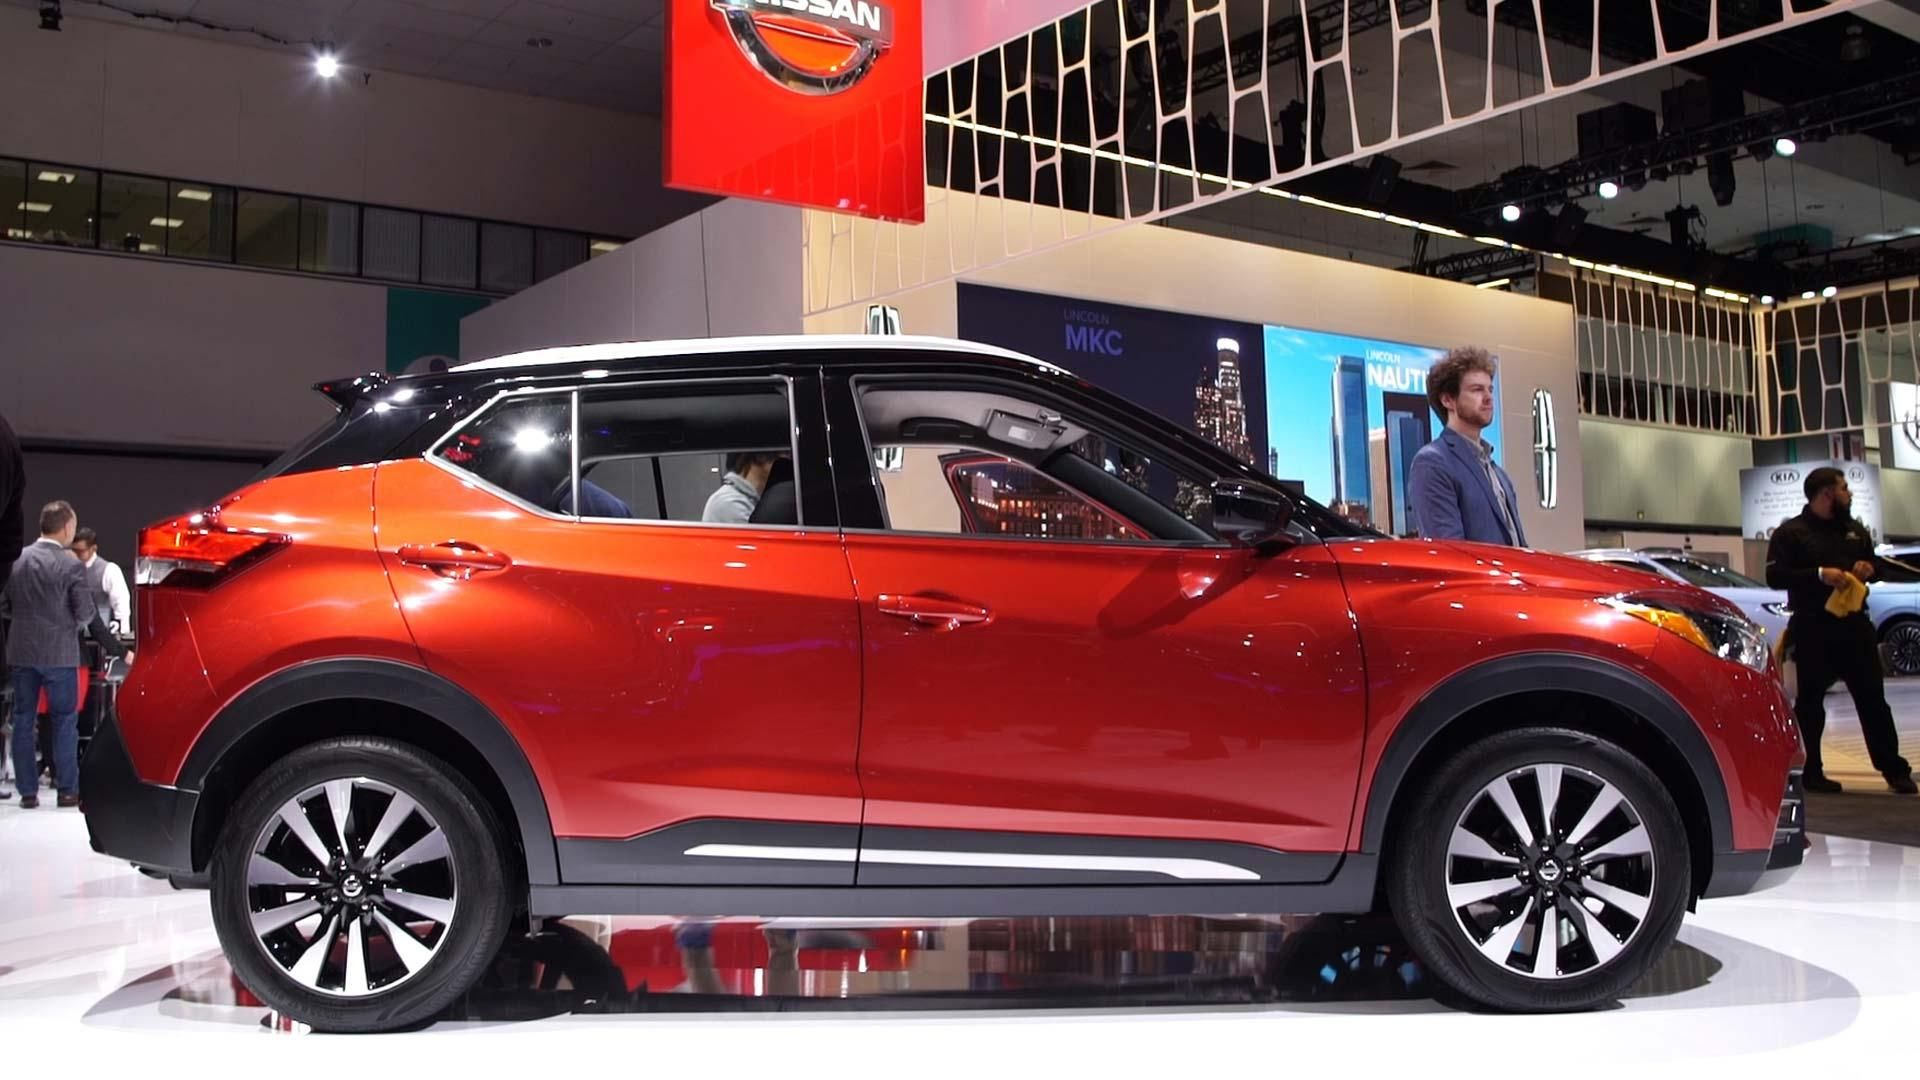 Nissan Kicks 2020 Redesign Release Date In 2020 Nissan Nissan Juke Redesign